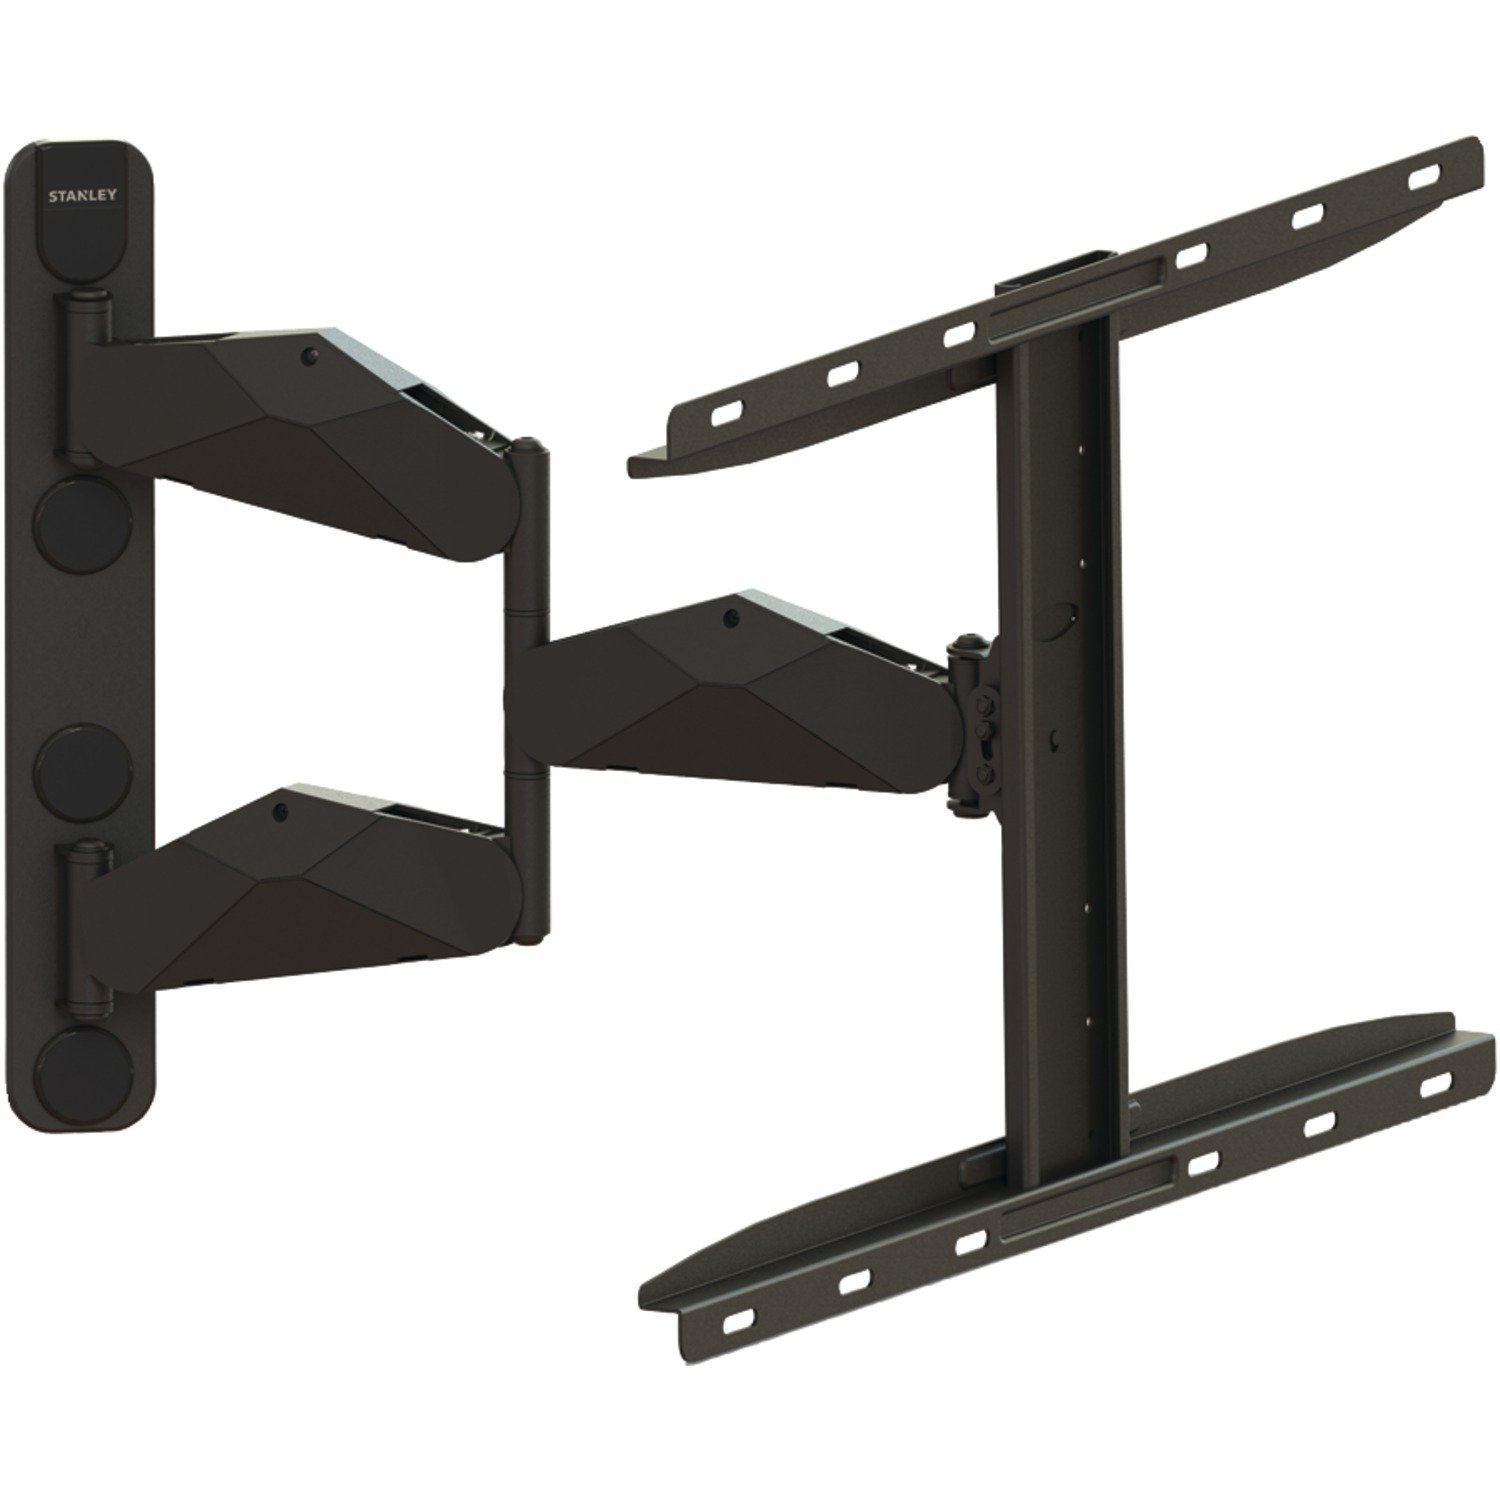 Stanley TV Wall Mount - Slim Full Motion Articulating Mount for Large Flat Panel Television (TLX-ES4501FM)